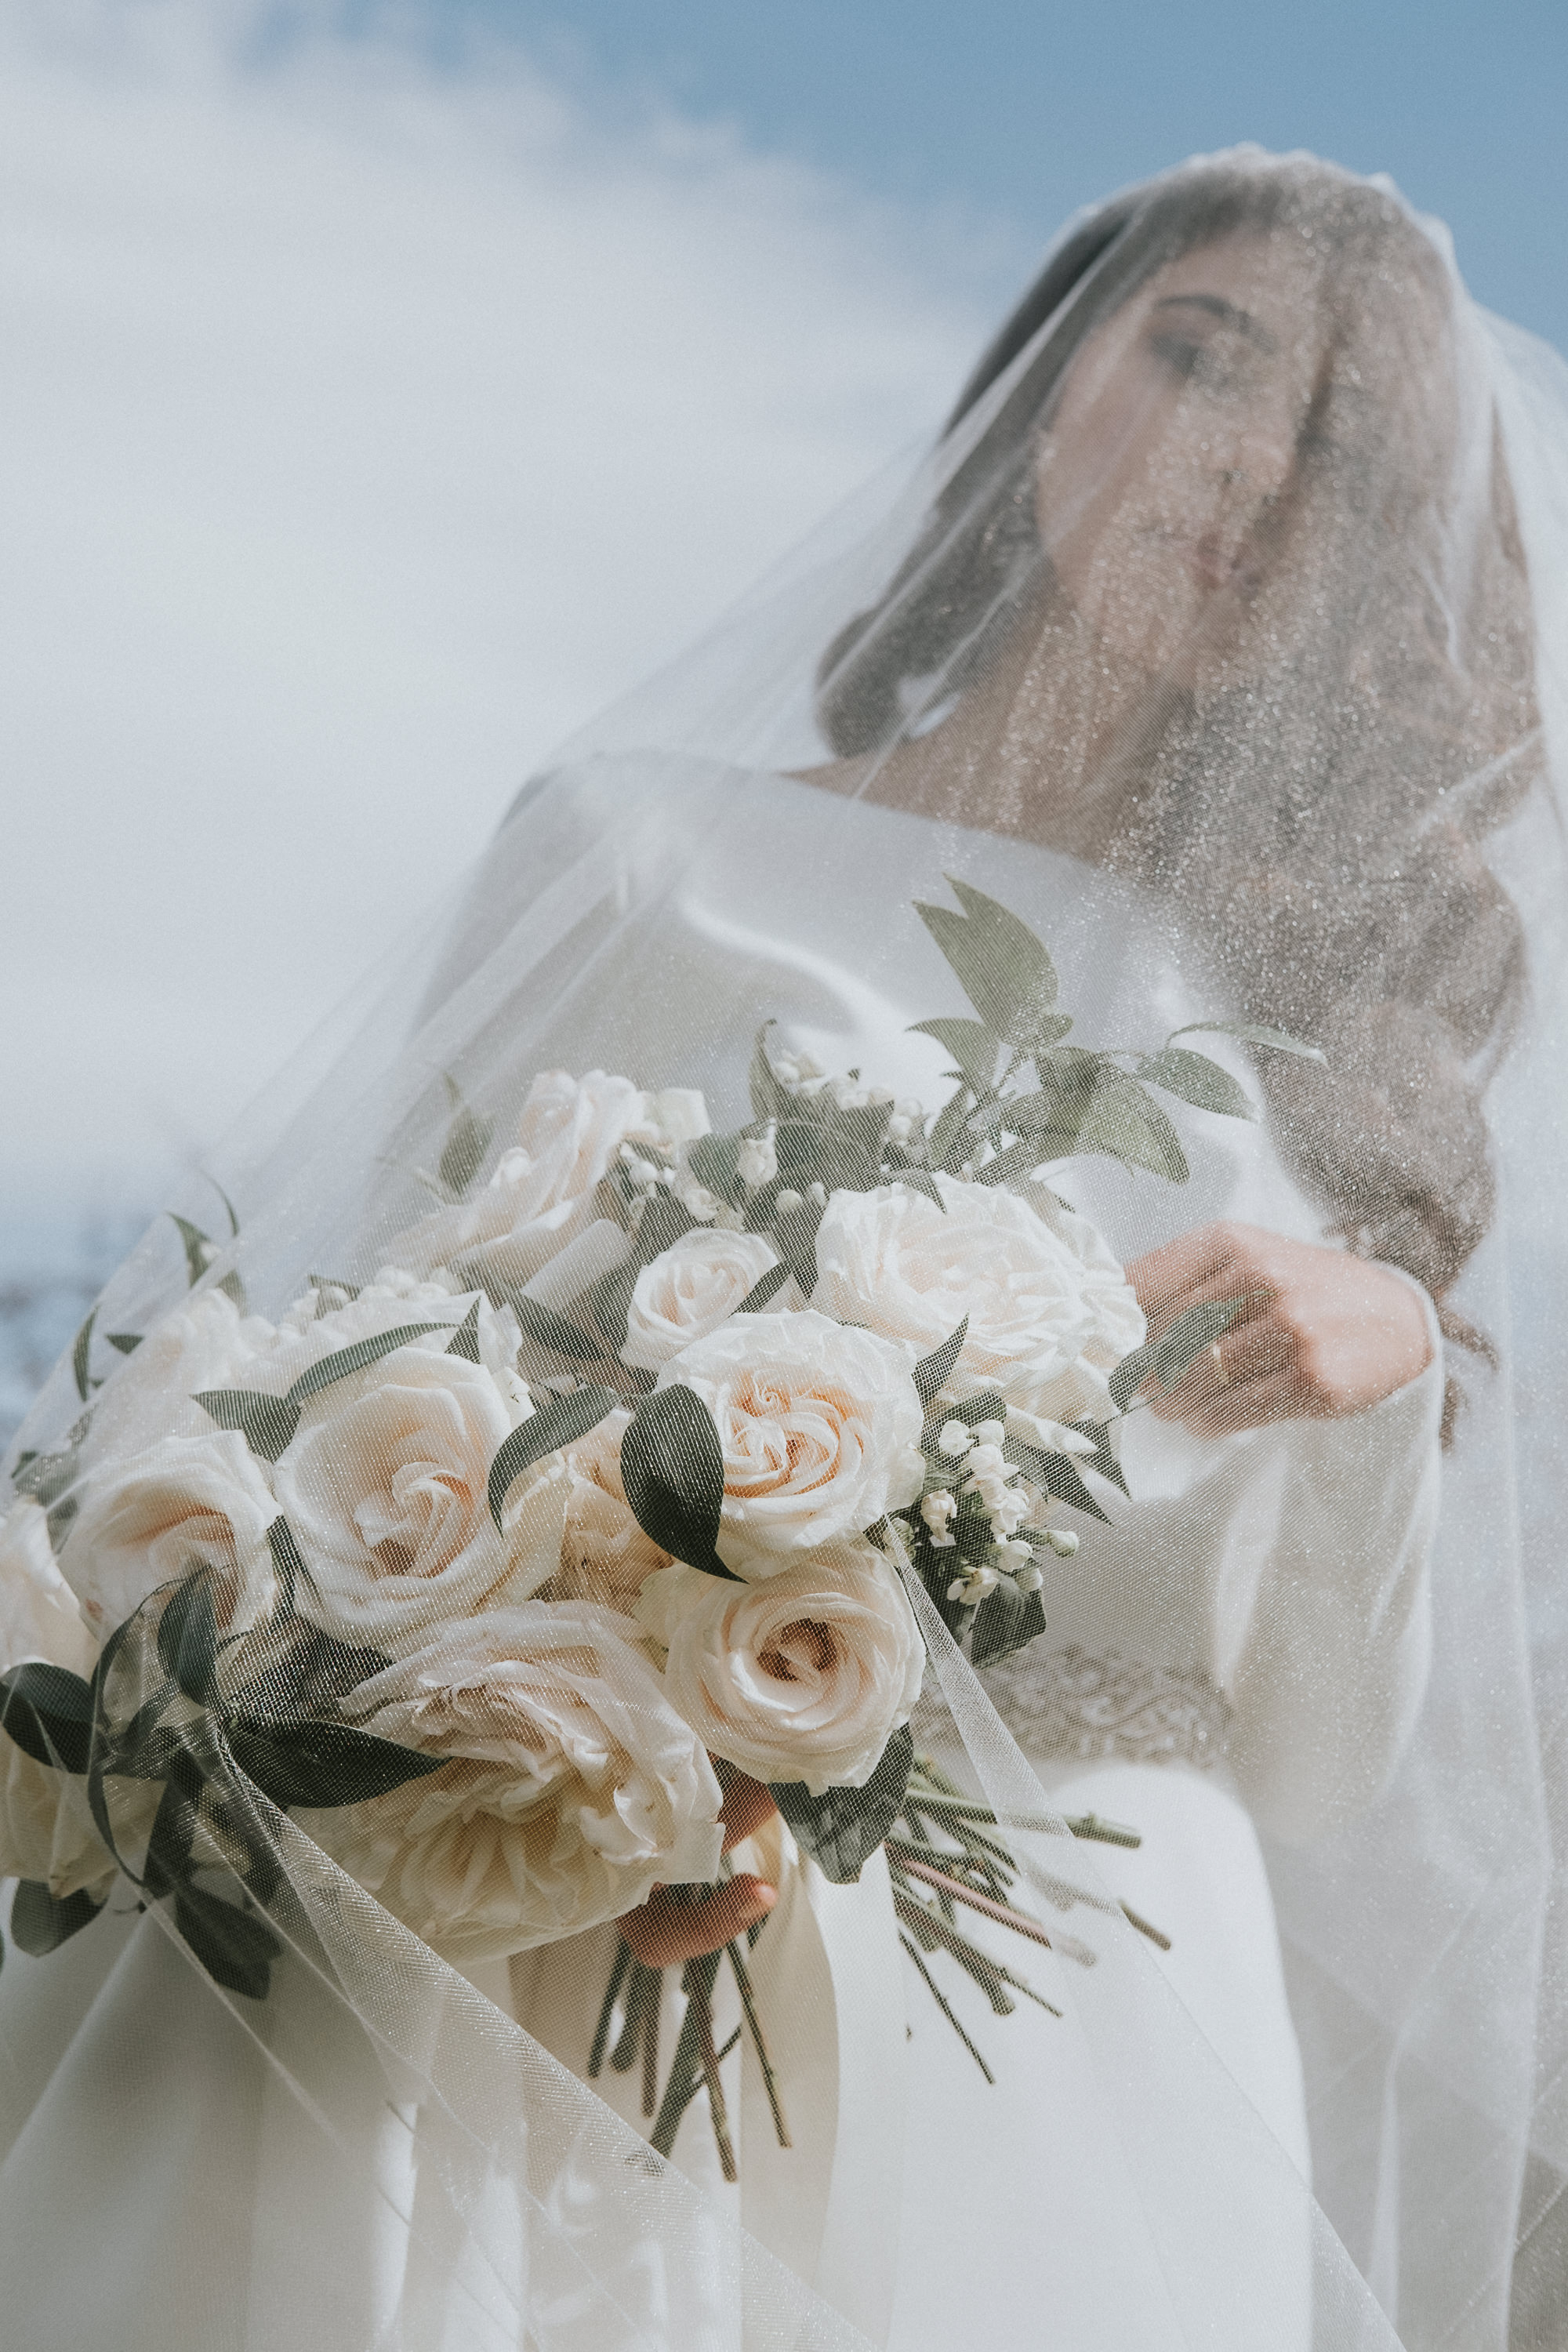 Creative composition of veiled bride with rose bouquet - photo by Joel and Justyna